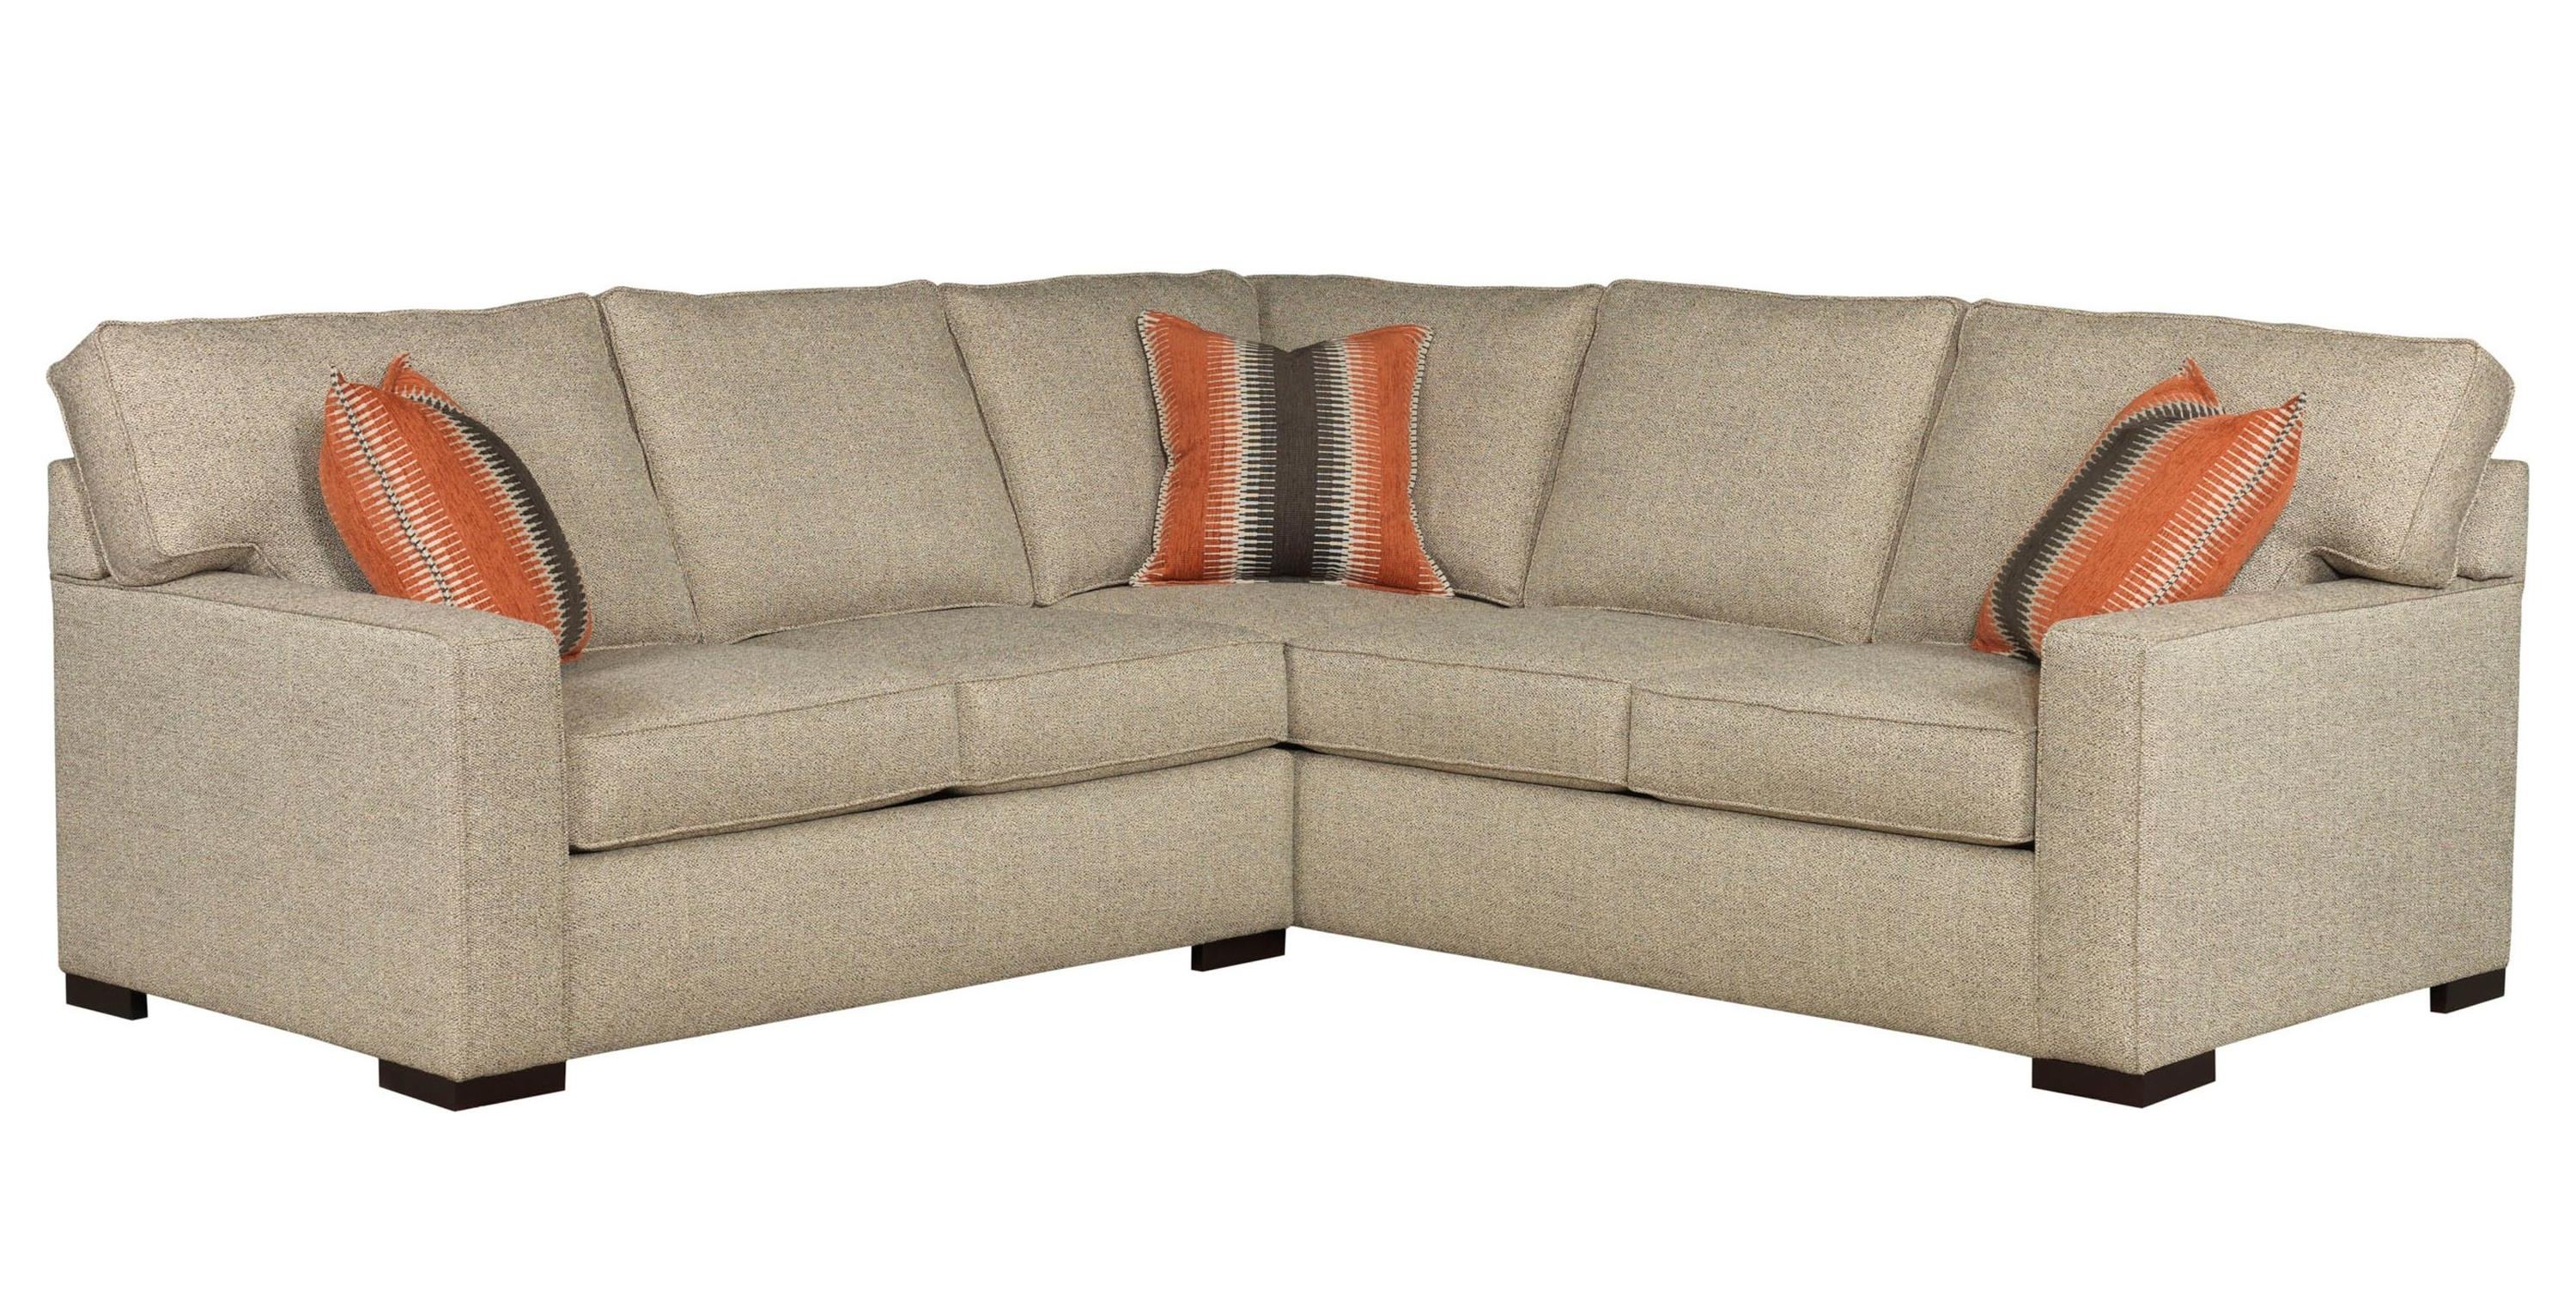 Well Liked Broyhill Furniture Raphael Contemporary Two Piece Sectional Sofa For Niagara Sectional Sofas (View 20 of 20)